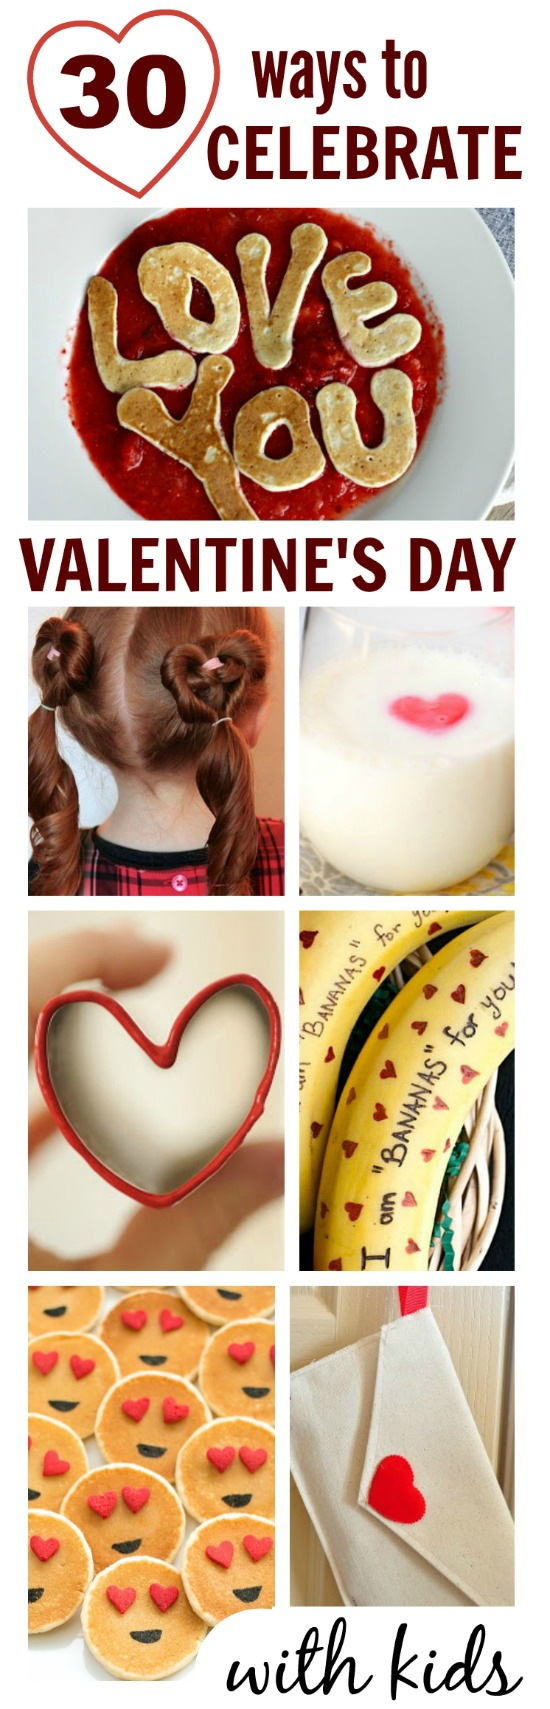 30 SIMPLE WAYS TO CELEBRATE VALENTINE'S DAY WITH KIDS.  Can I be a kid again please?  These are so cool! #valentinesdayforkids #celebratingvalentinesdaywithkids #valentinescrafts